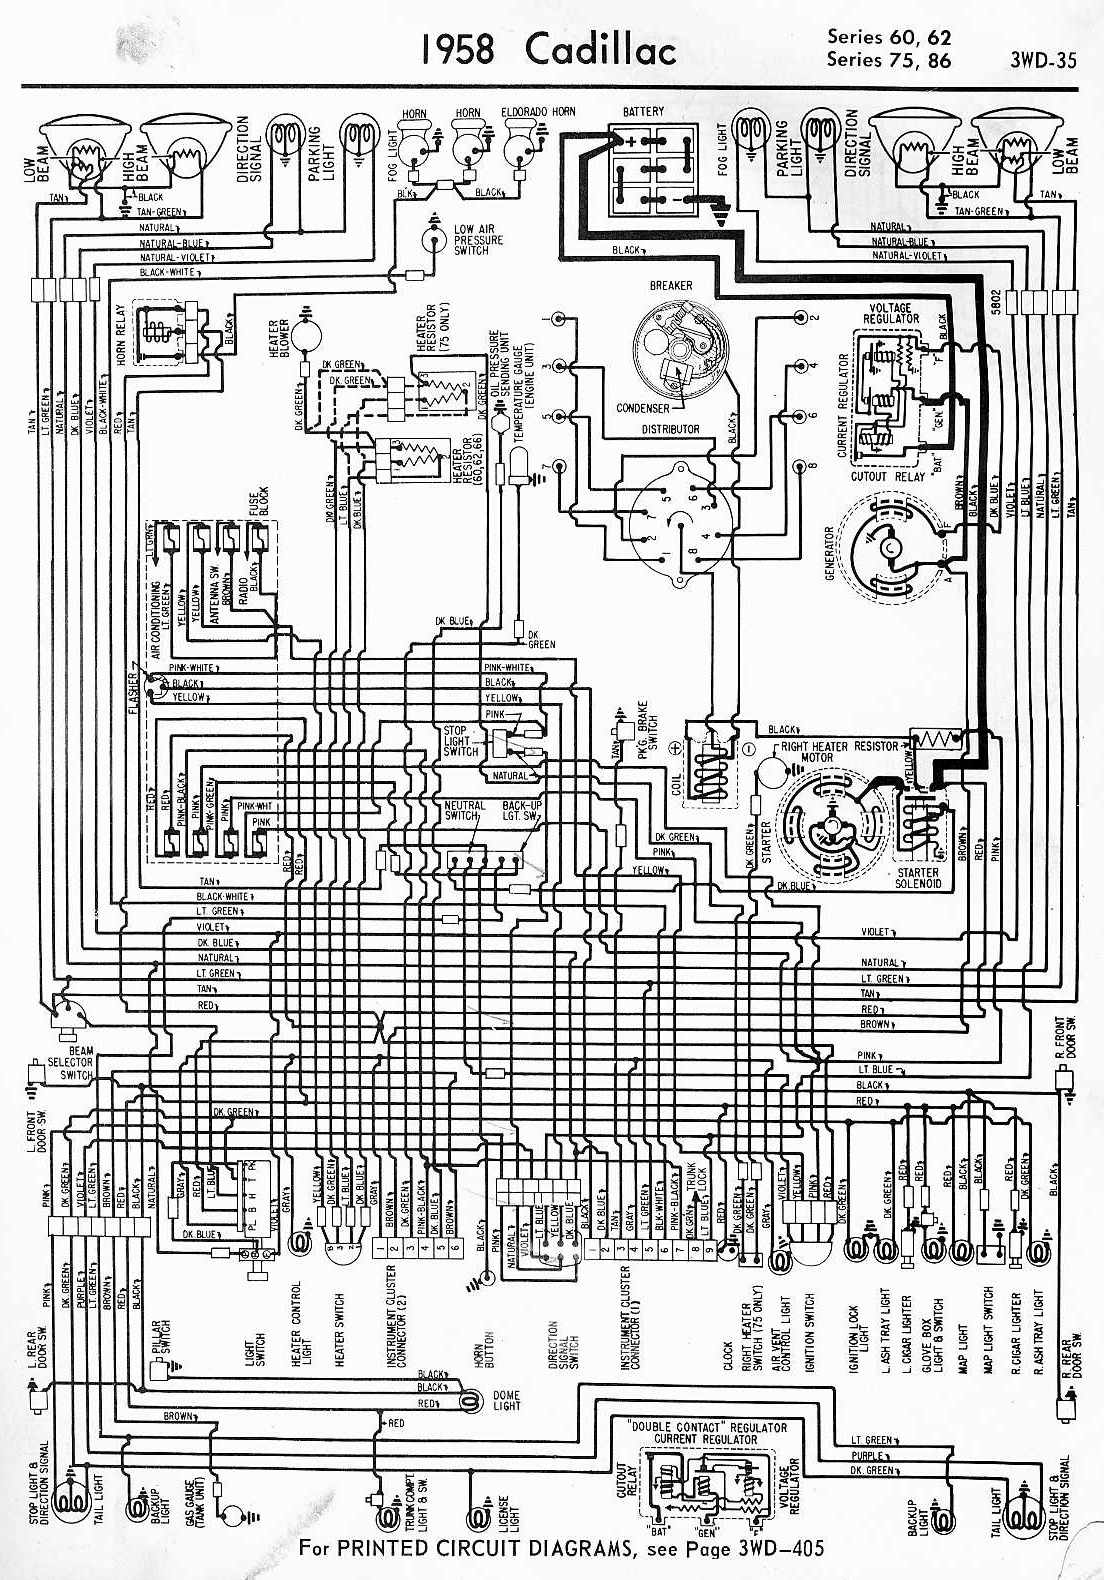 1992 Cadillac Seville Stereo Wiring Diagram Electrical 2000 Deville Diagrams Schematics U2022